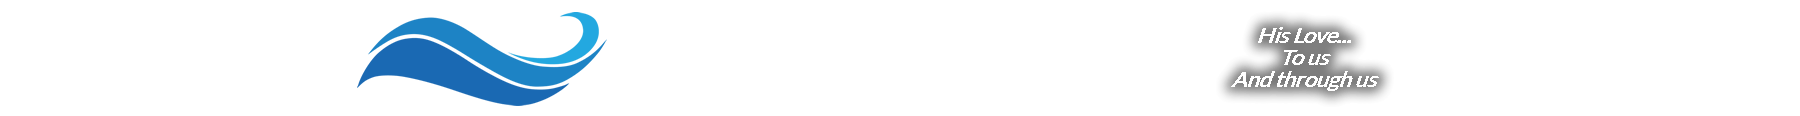 Jeremiah Johnson Ministries Logo